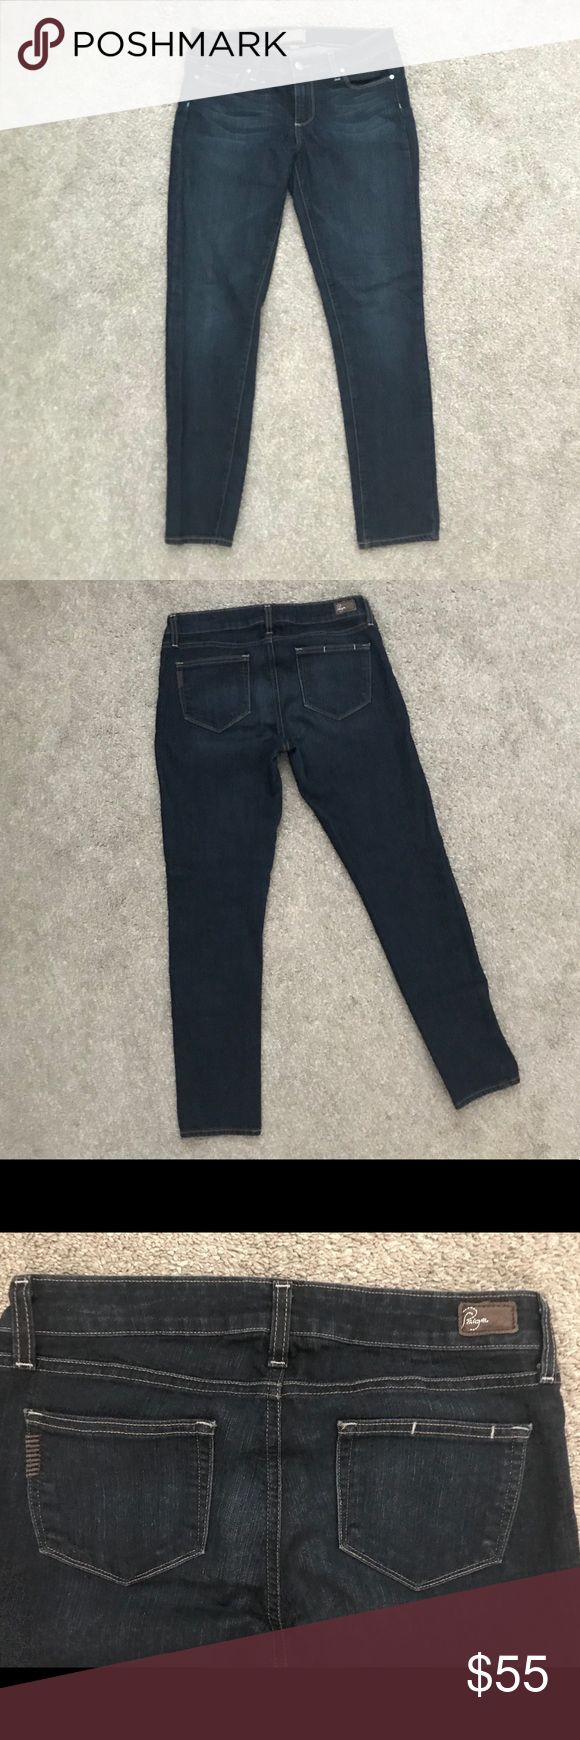 """Women's Paige skinny jeans Dark wash Peg skinny fit 28.5"""" inseam 5"""" ankle opening Paige Jeans Jeans Skinny"""